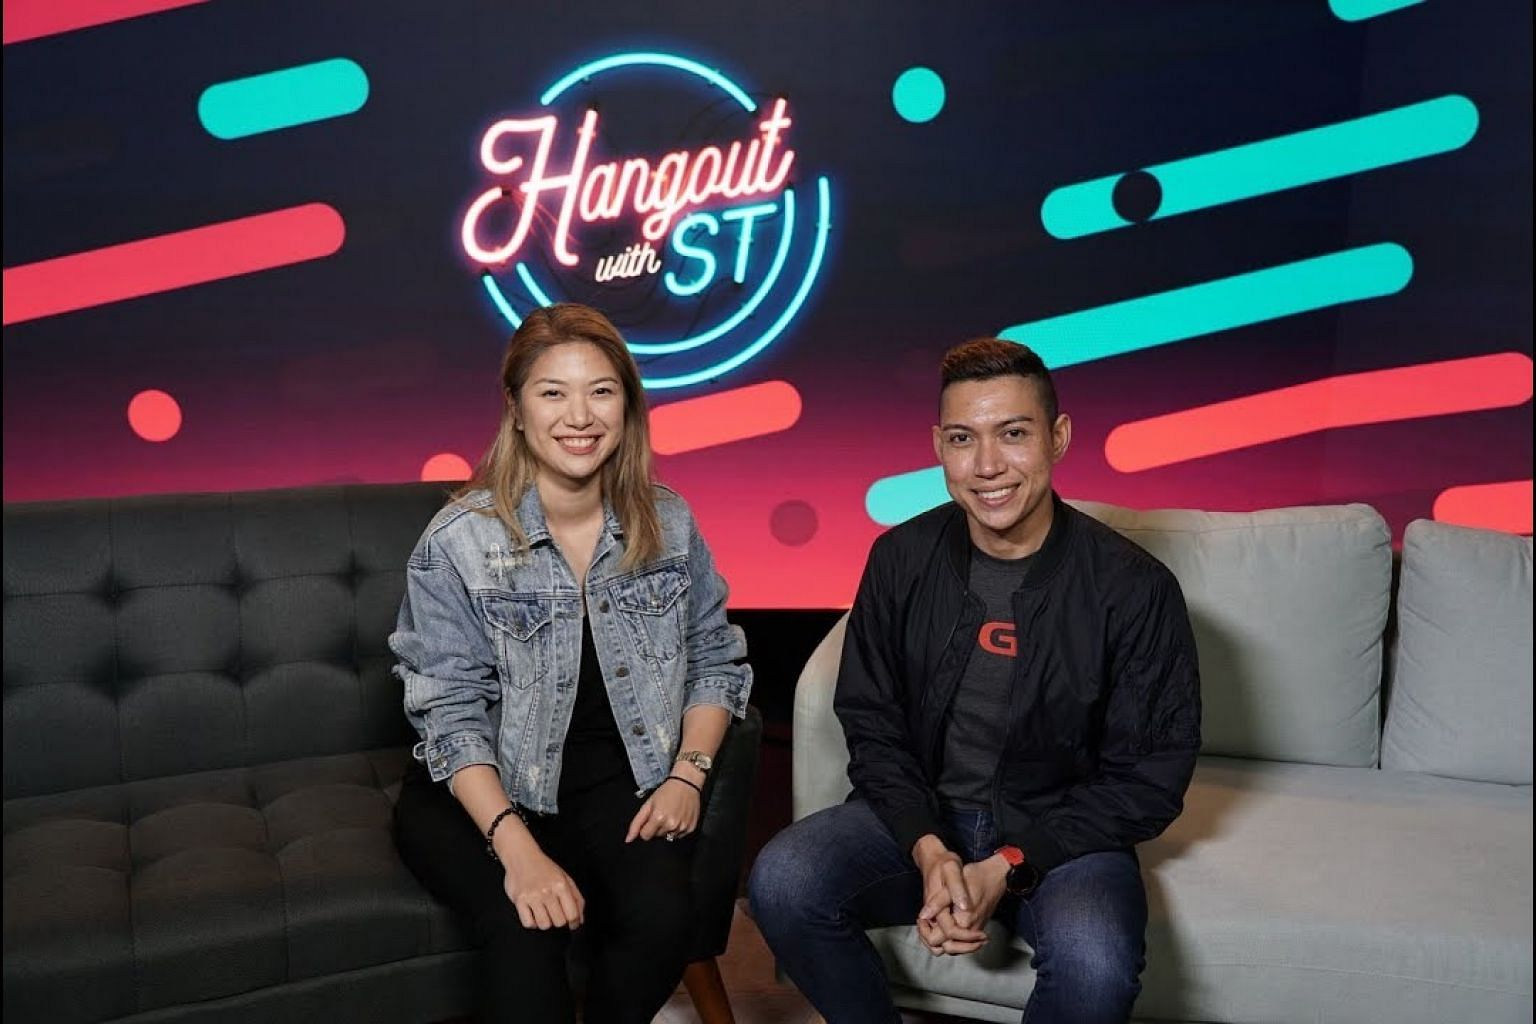 Hangout with ST:  Teens with no place to go home to | ITE alumni making waves | The Straits Times